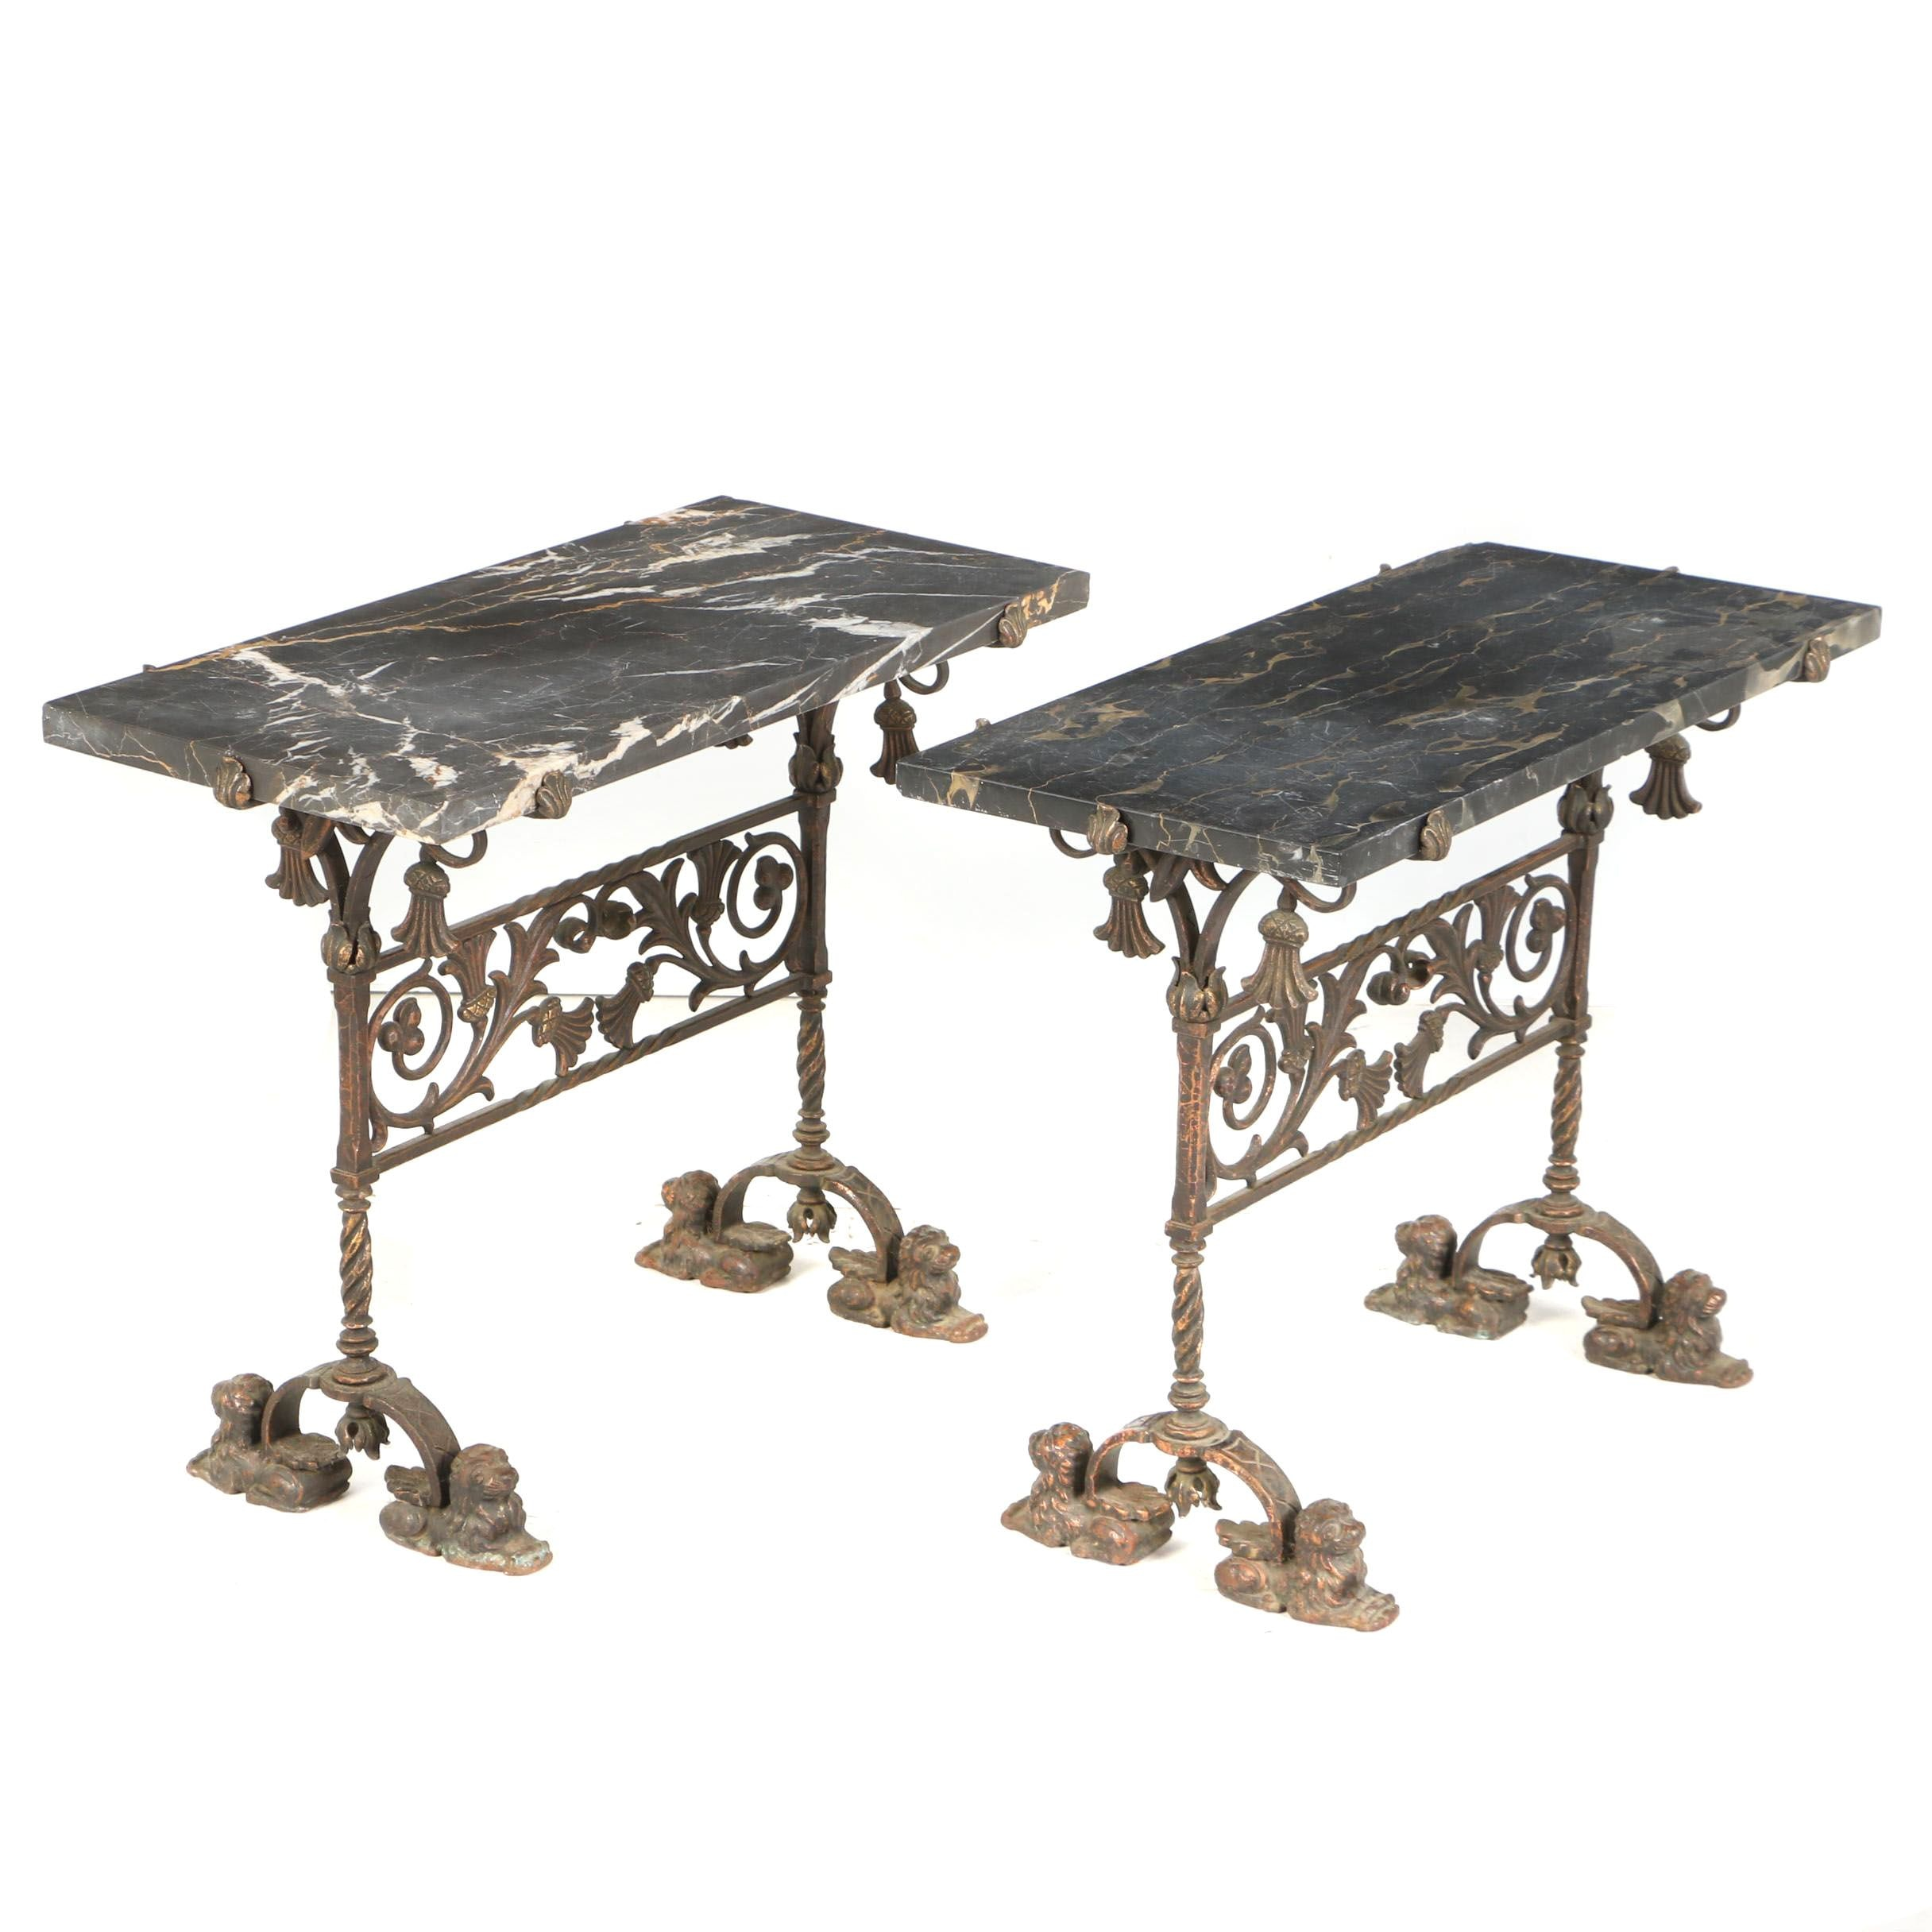 Pair of Iron, Brass, and Black Marble Side Tables, Early 20th Century